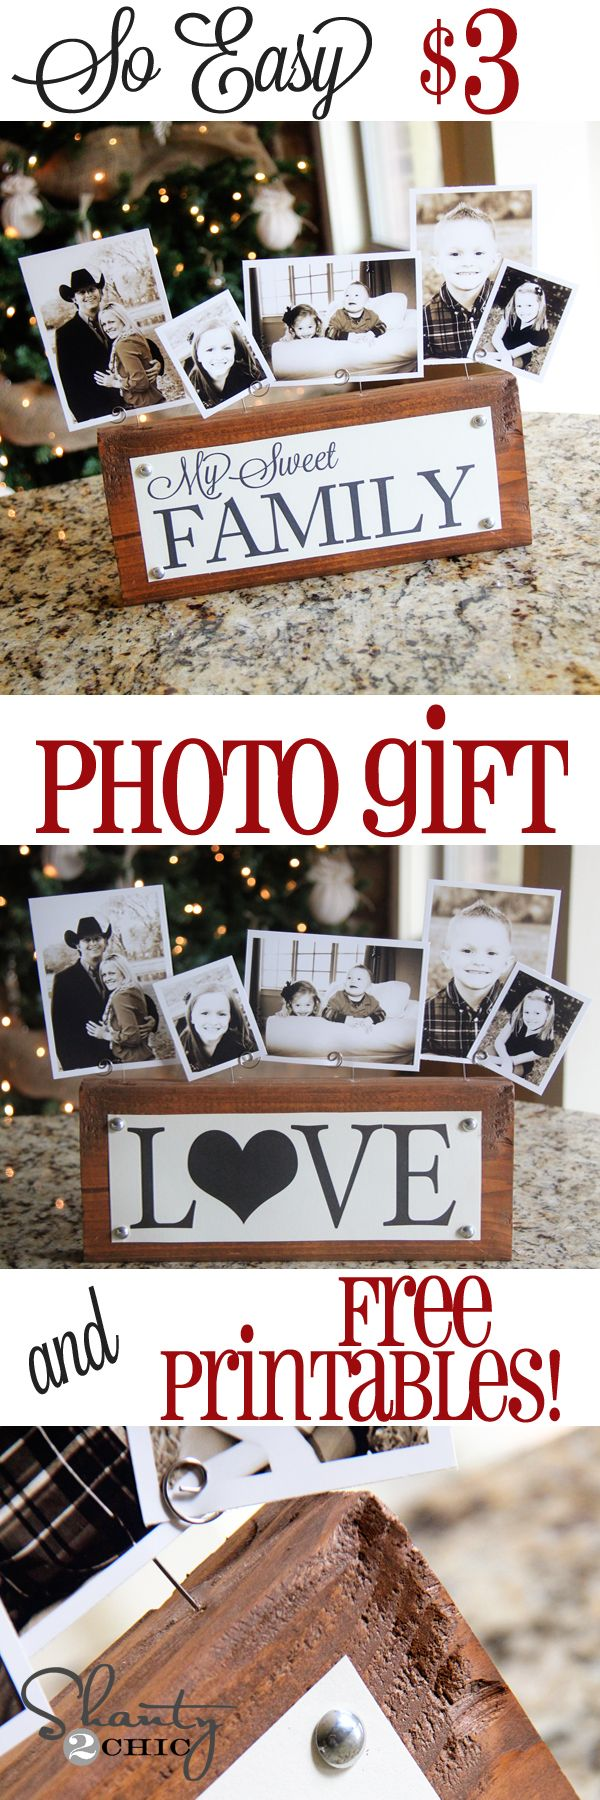 Great Photo Block Gift Idea for #Christmas from Shanty-2-Chic.com // Great Christmas gift for anyone and SO EASY!